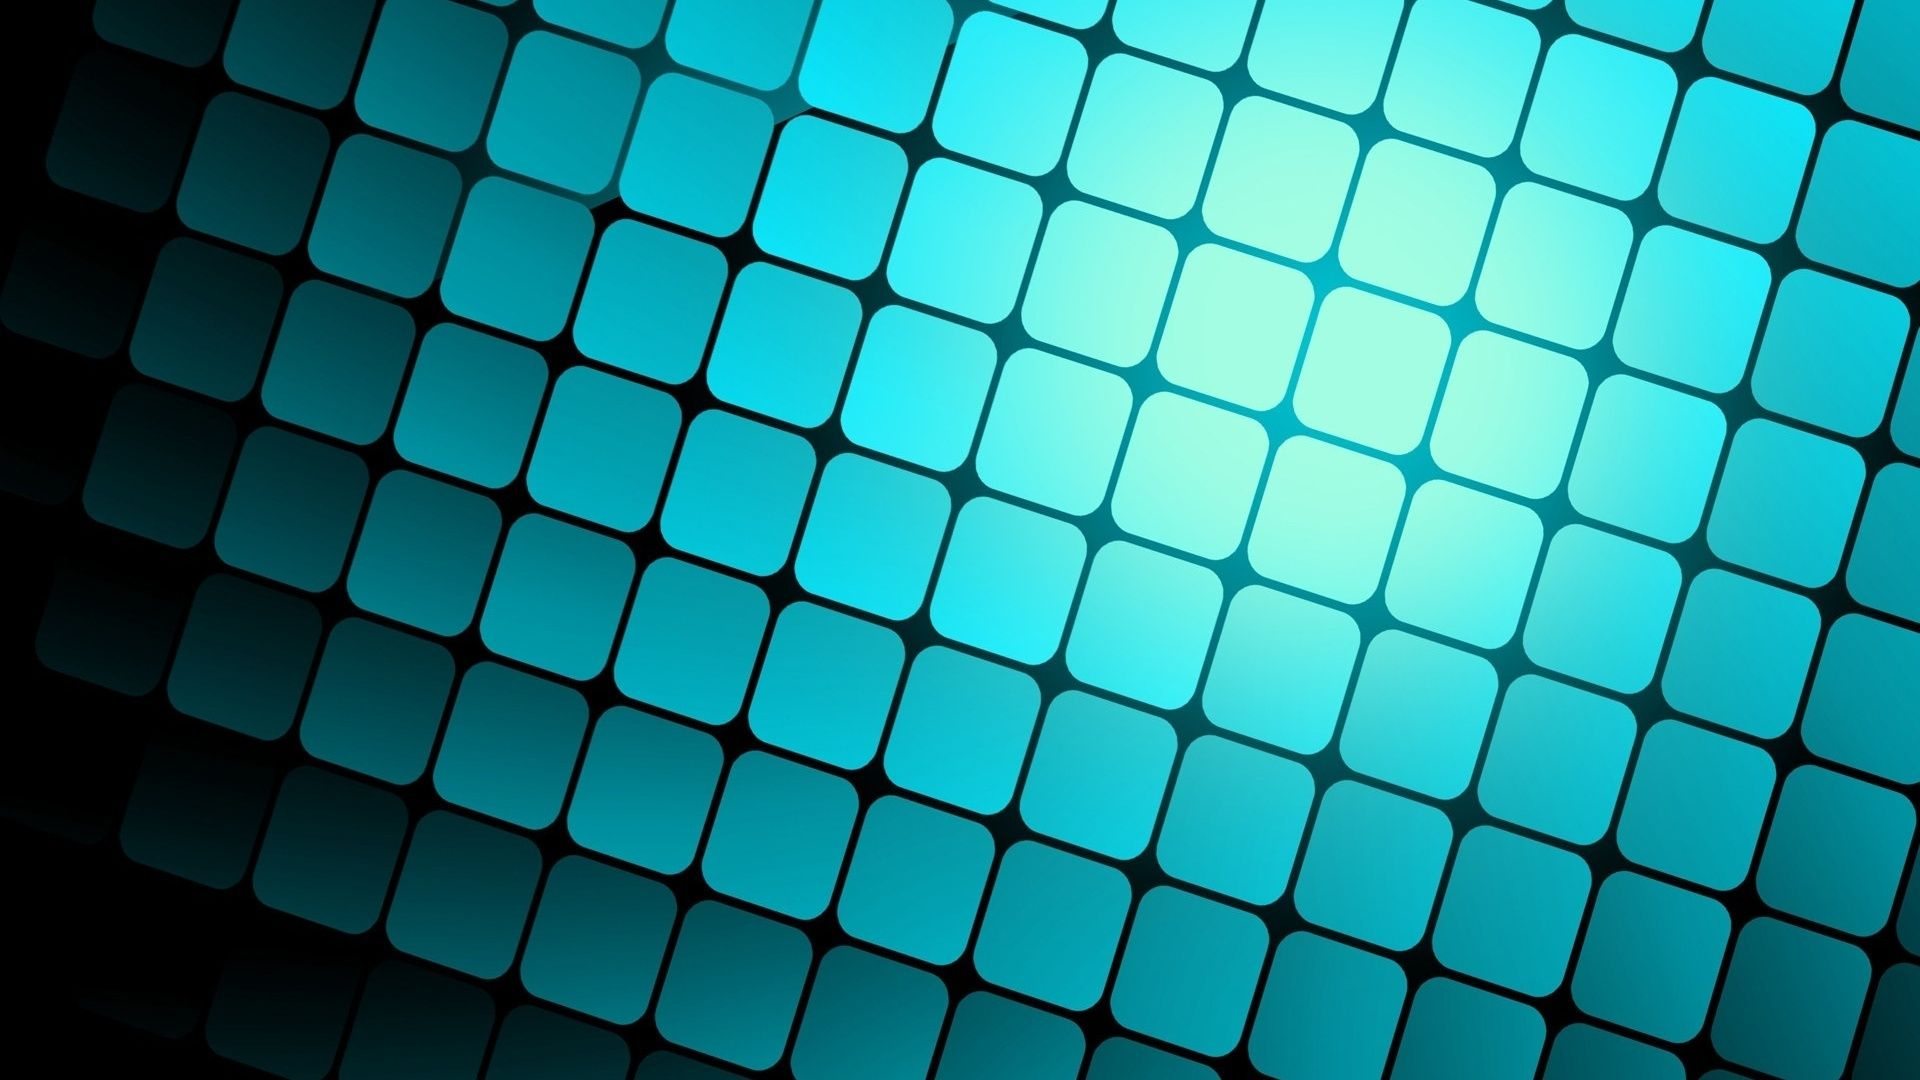 Turquoise Wallpapers Designs Group 1920x1080 Wallpaper 20